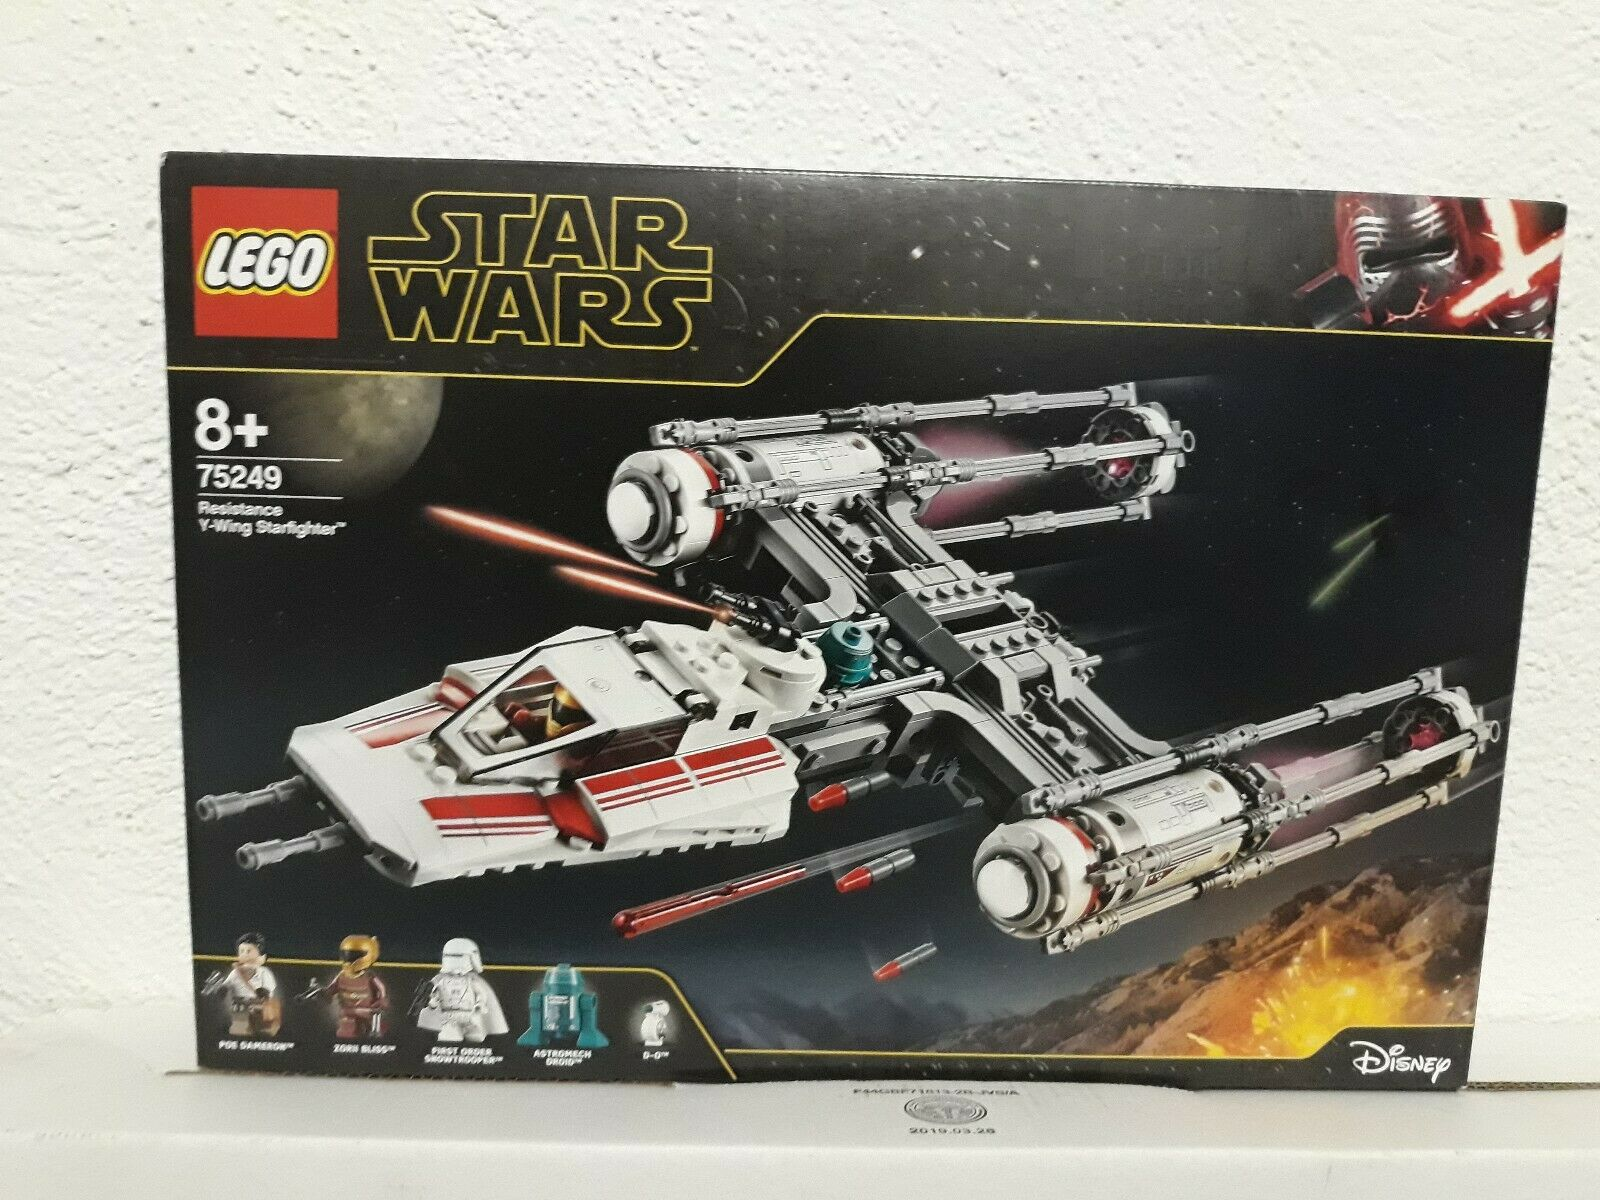 Lego Star Wars 75249 Resistance Y-Wing Starfighter New  nuevo